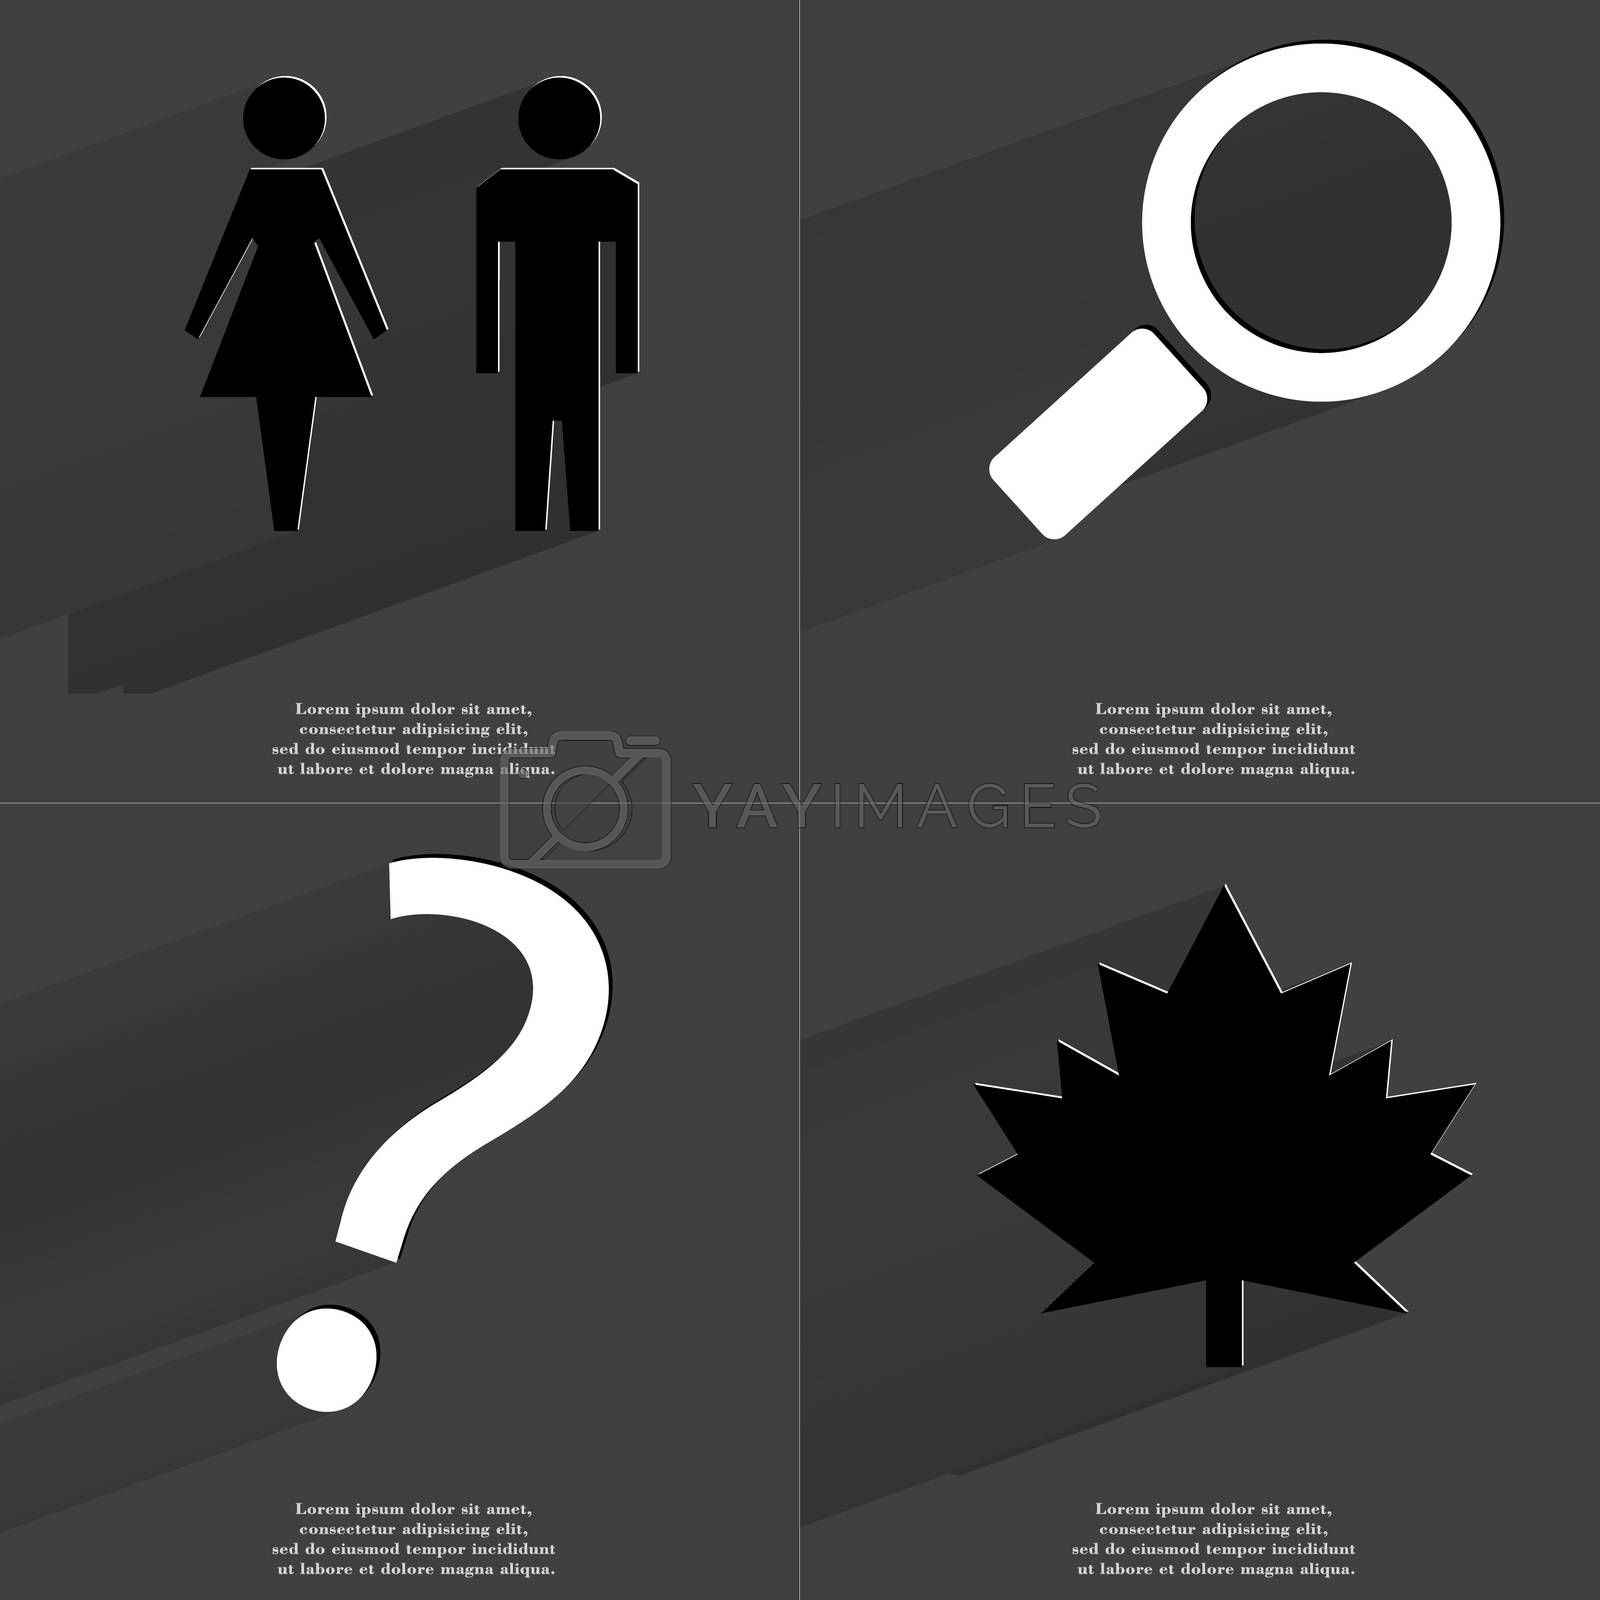 Royalty free image of Silhouette of man and woman, Magnifying glass, Question mark, Maple leaf. Symbols with long shadow. Flat design by serhii_lohvyniuk